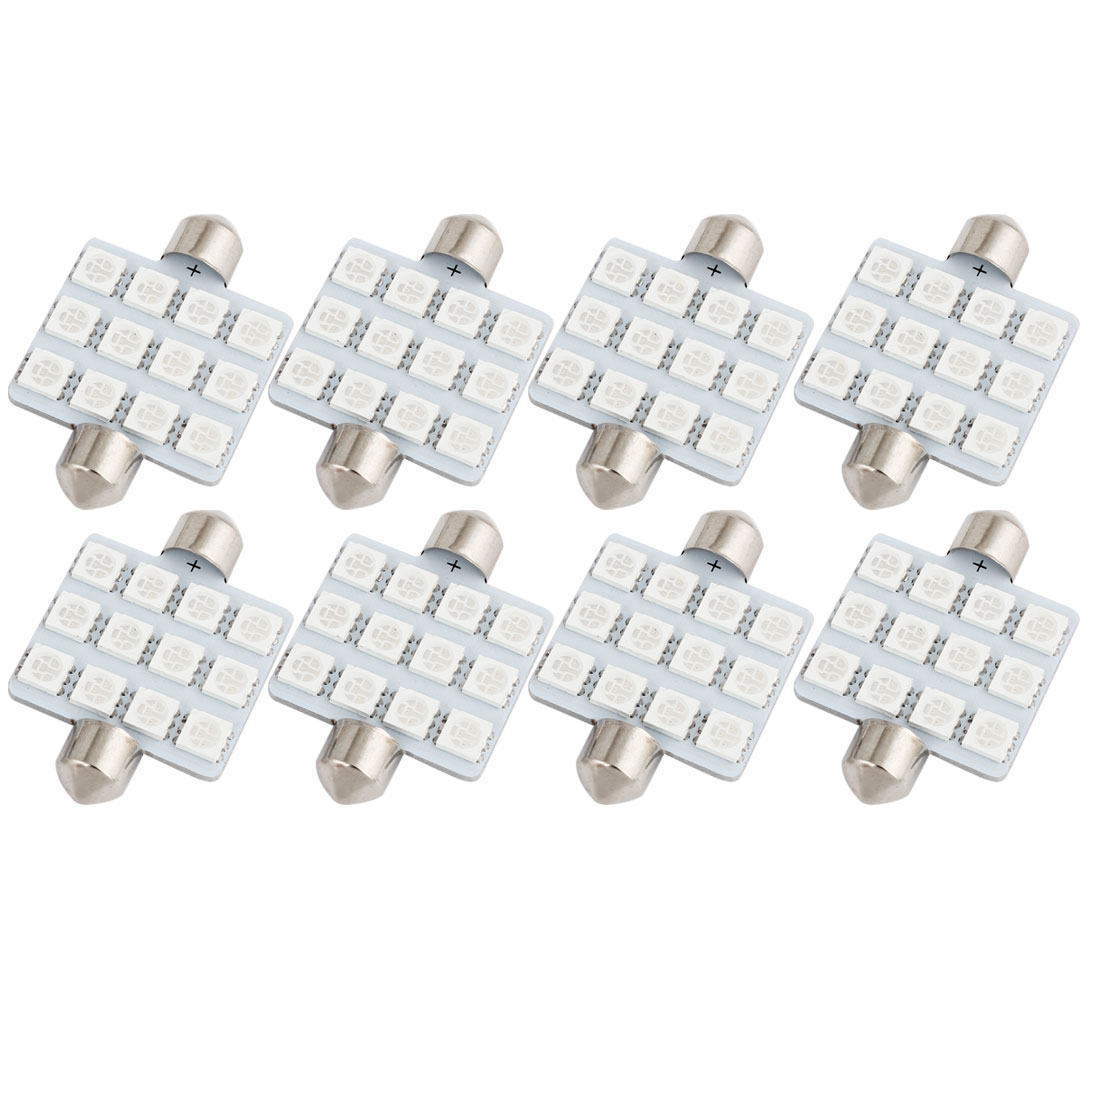 8PCS 41mm 12-LED 5050 Green SMD Festoon Map Light Lamp 212-2 12844 Internal